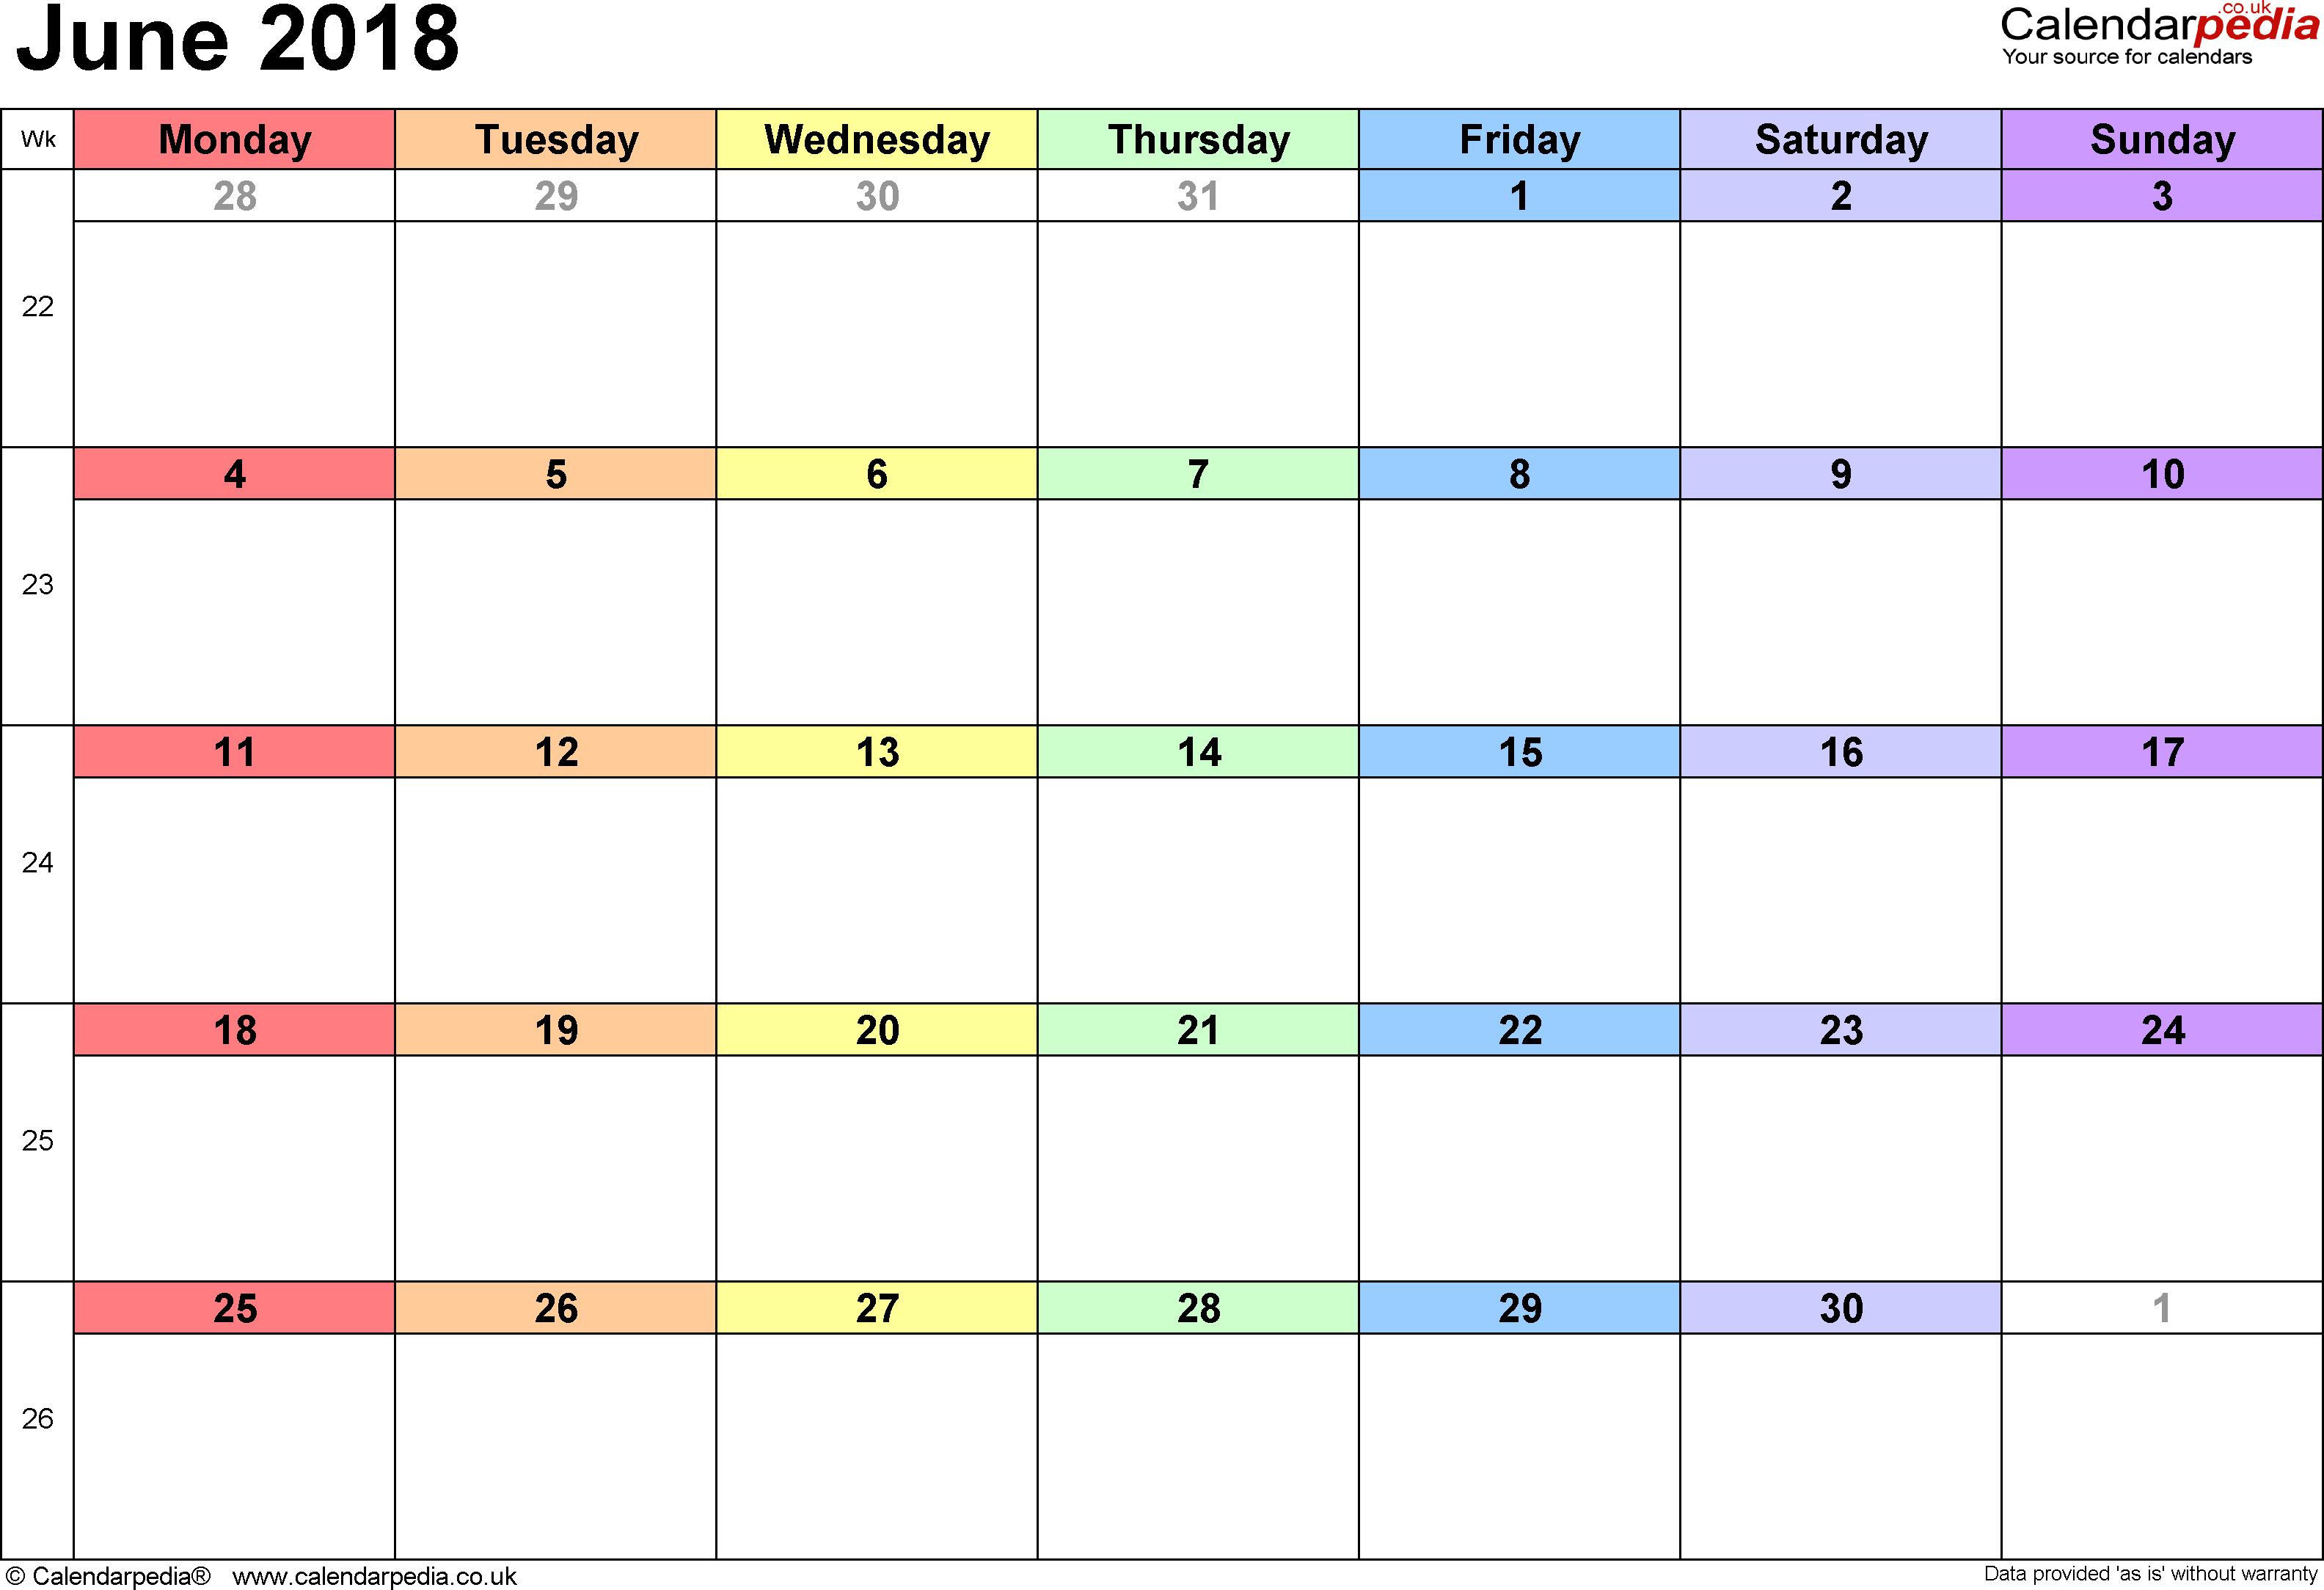 calendar june 2018 landscape orientation 1 page with uk bank holidays and week